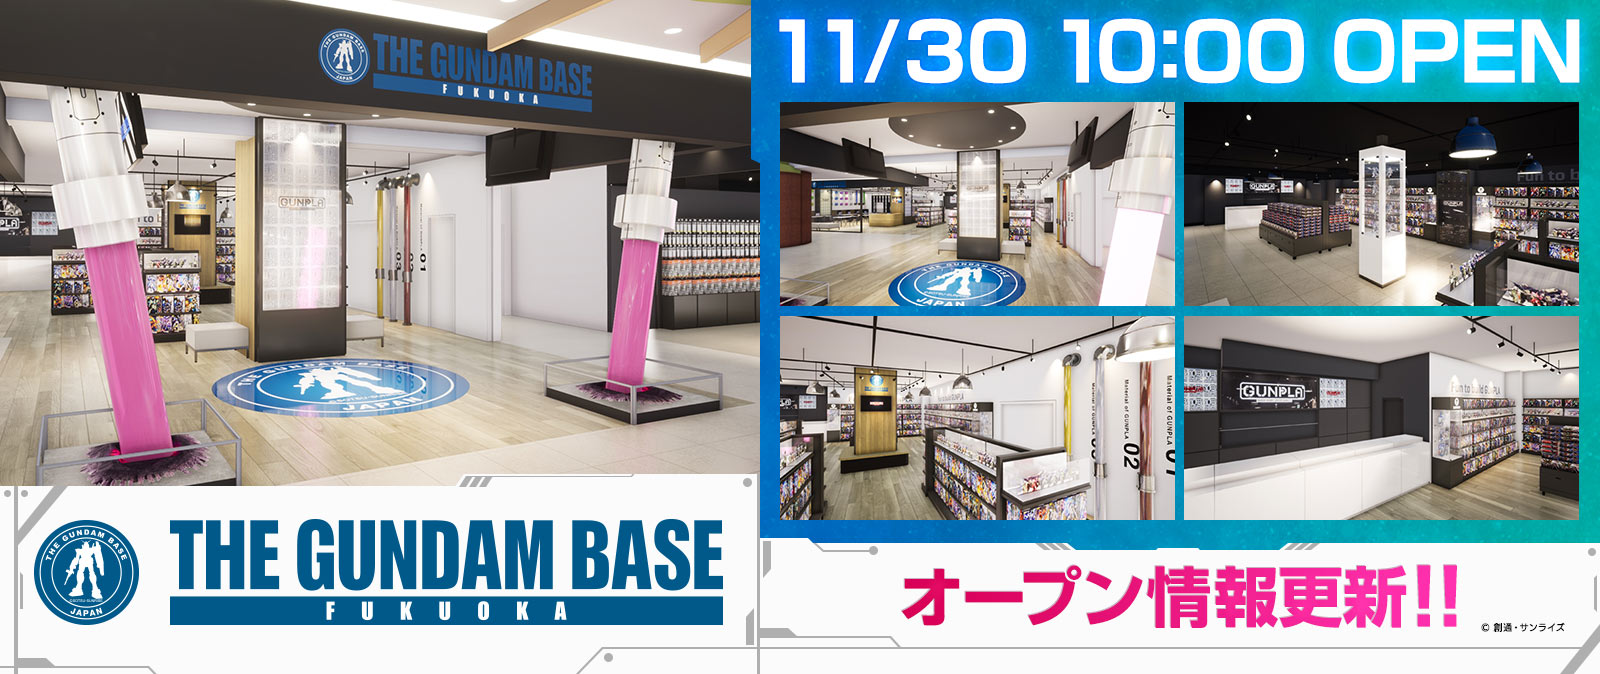 THE GUNDAM BASE FUKUOKA オープン